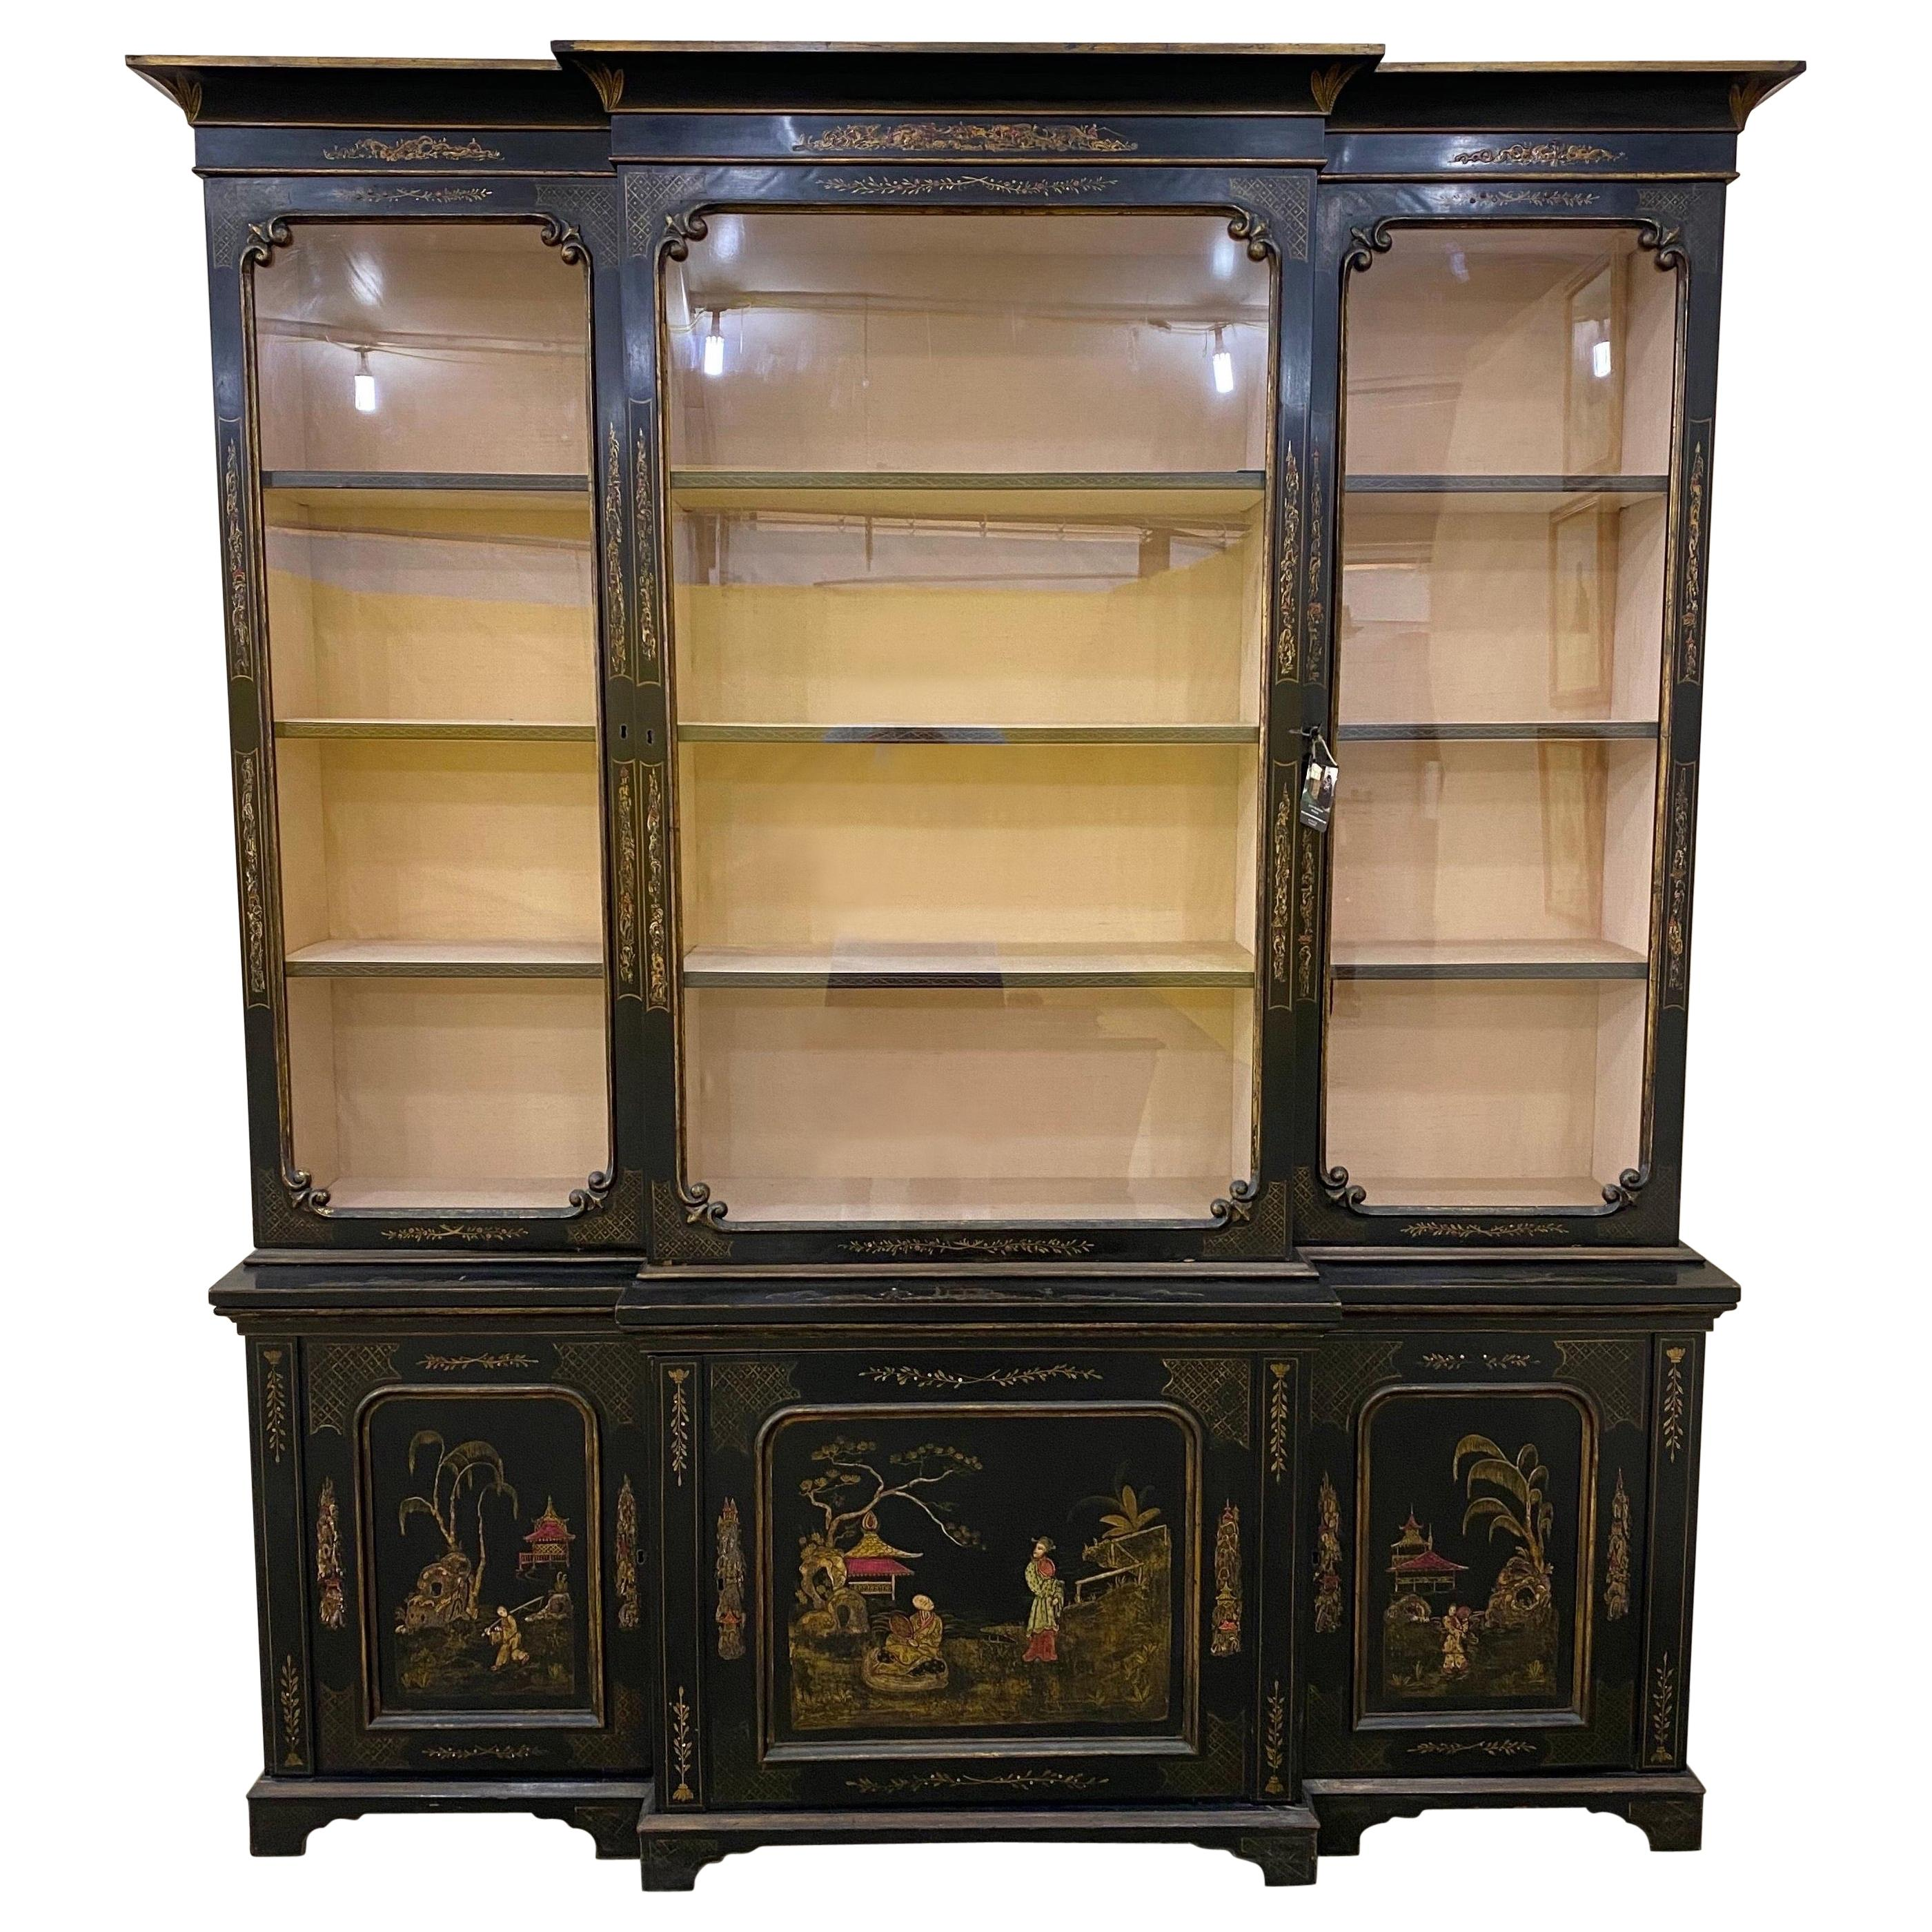 19th Century English Chinoiserie Breakfront China Cabinet or Bookcase